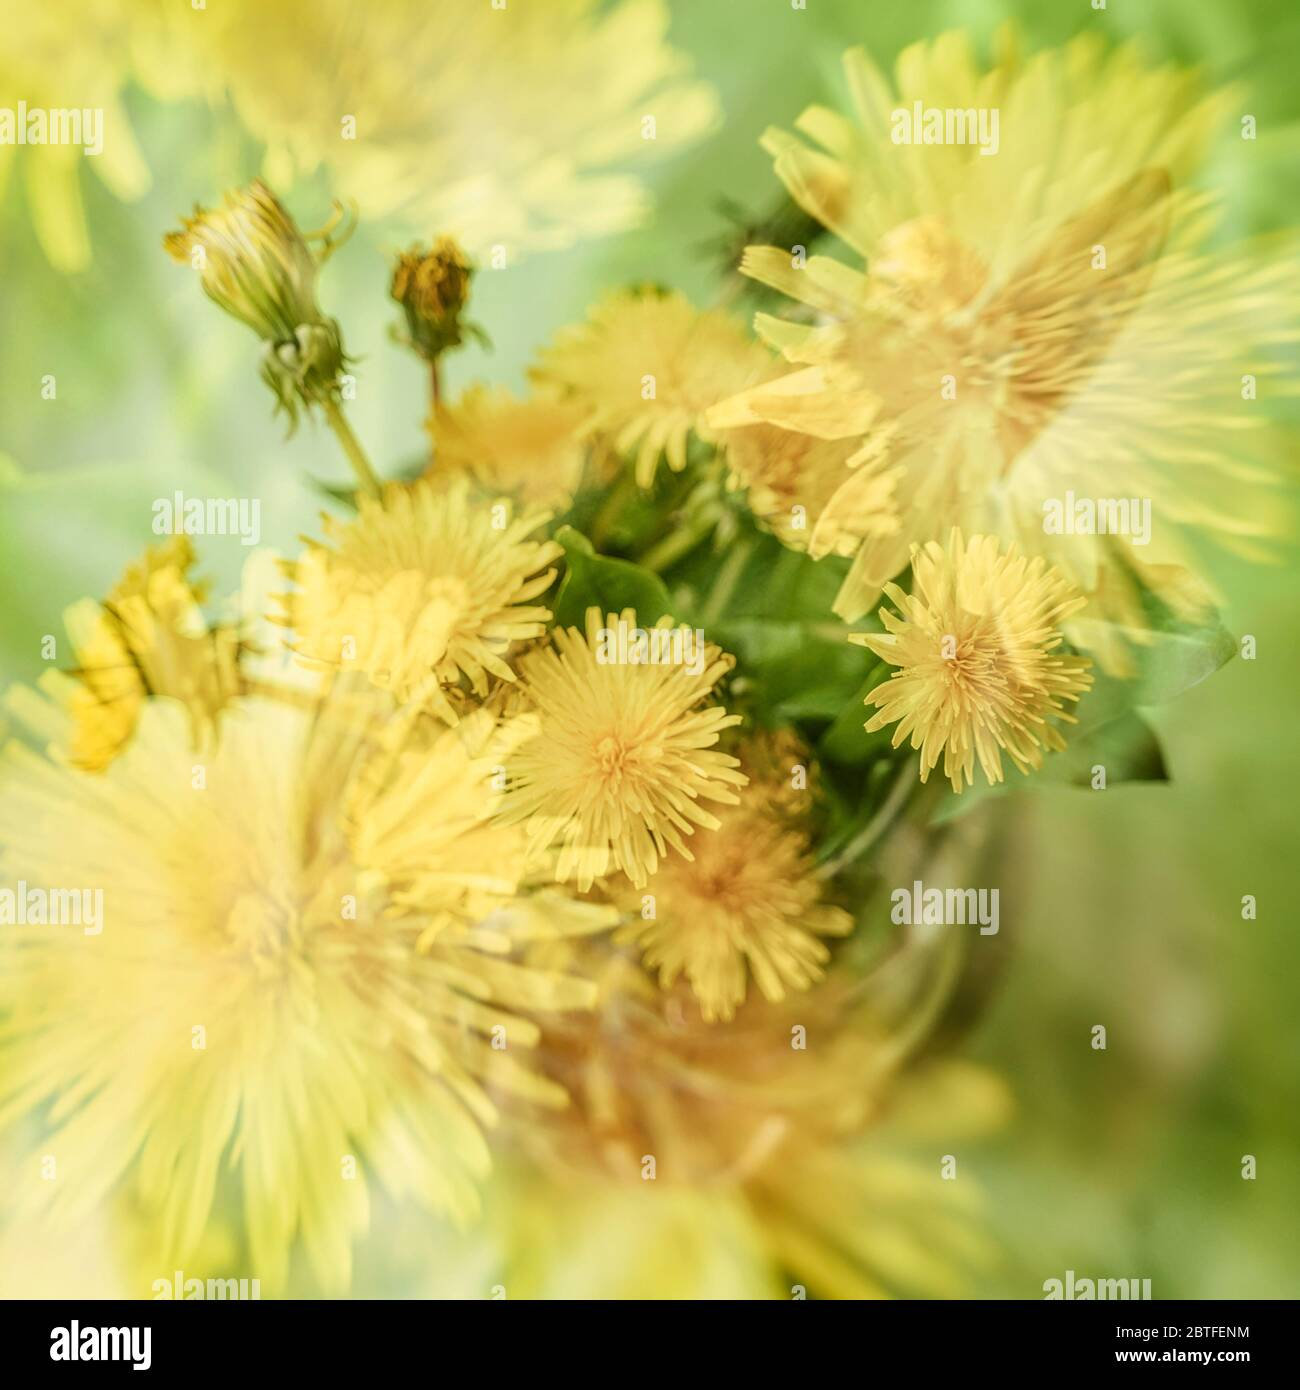 Blurred floral background, double exposure, colorful yellow dandelions. Concept of spring, holidays Stock Photo